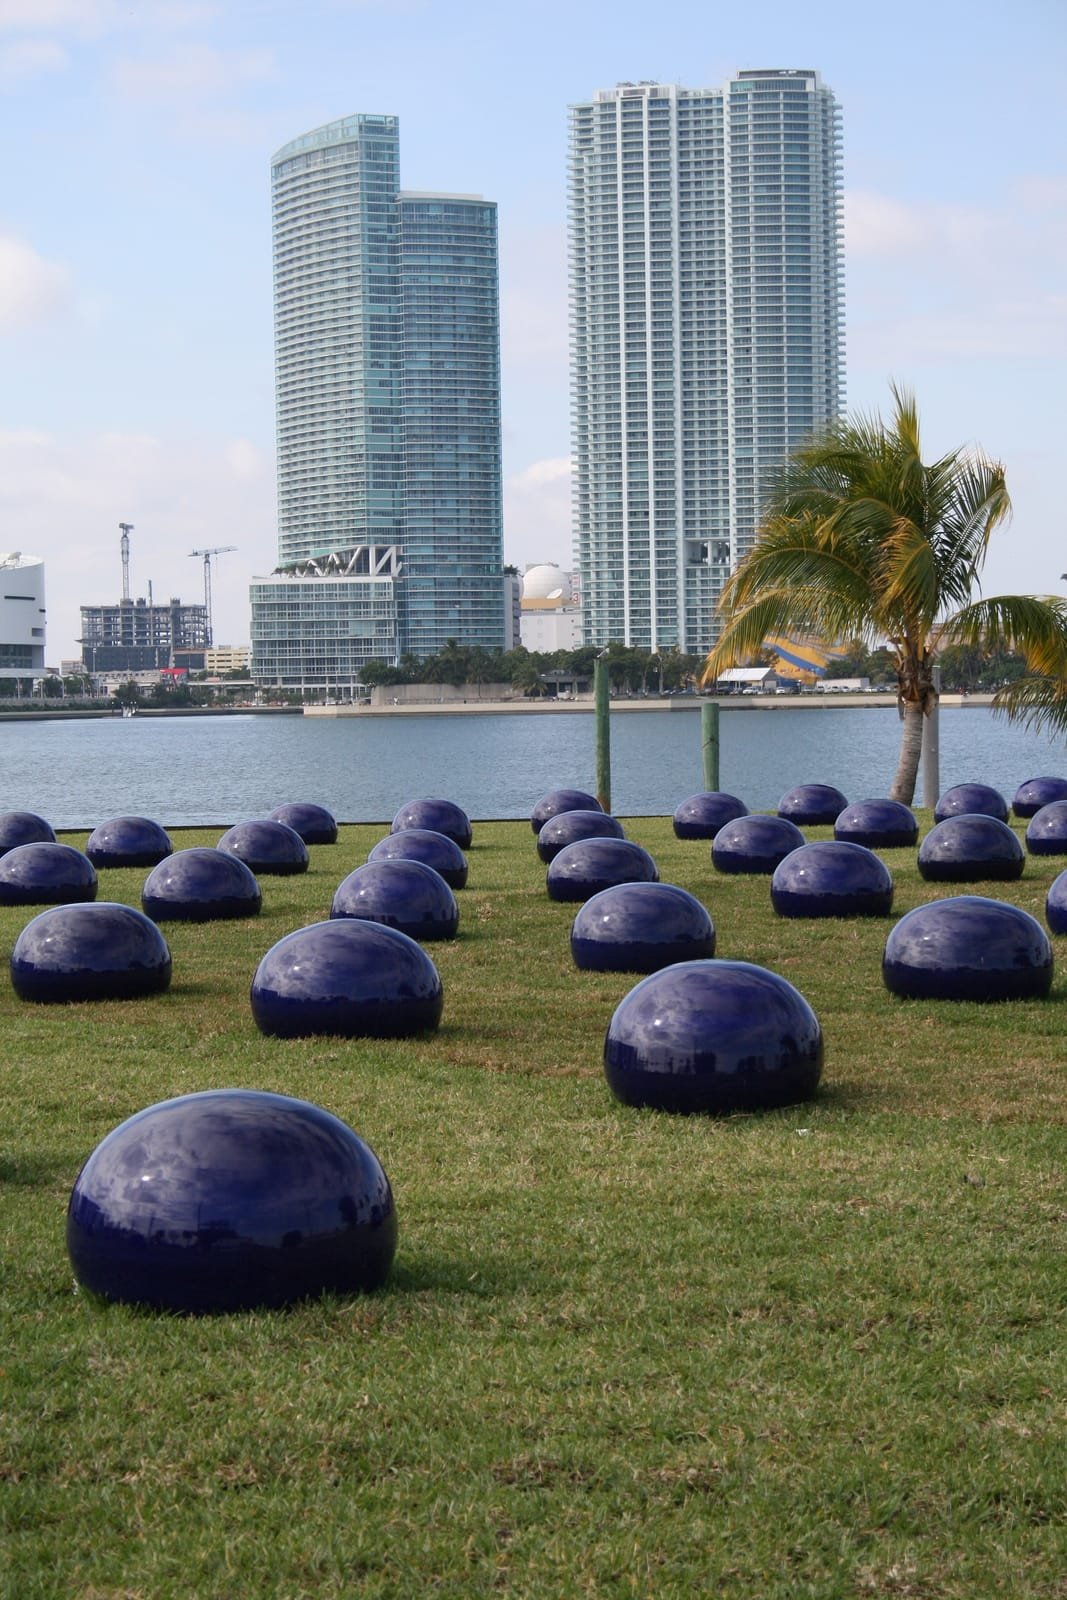 An outdoor installation from Art Basel, Miami – looking across the bay.